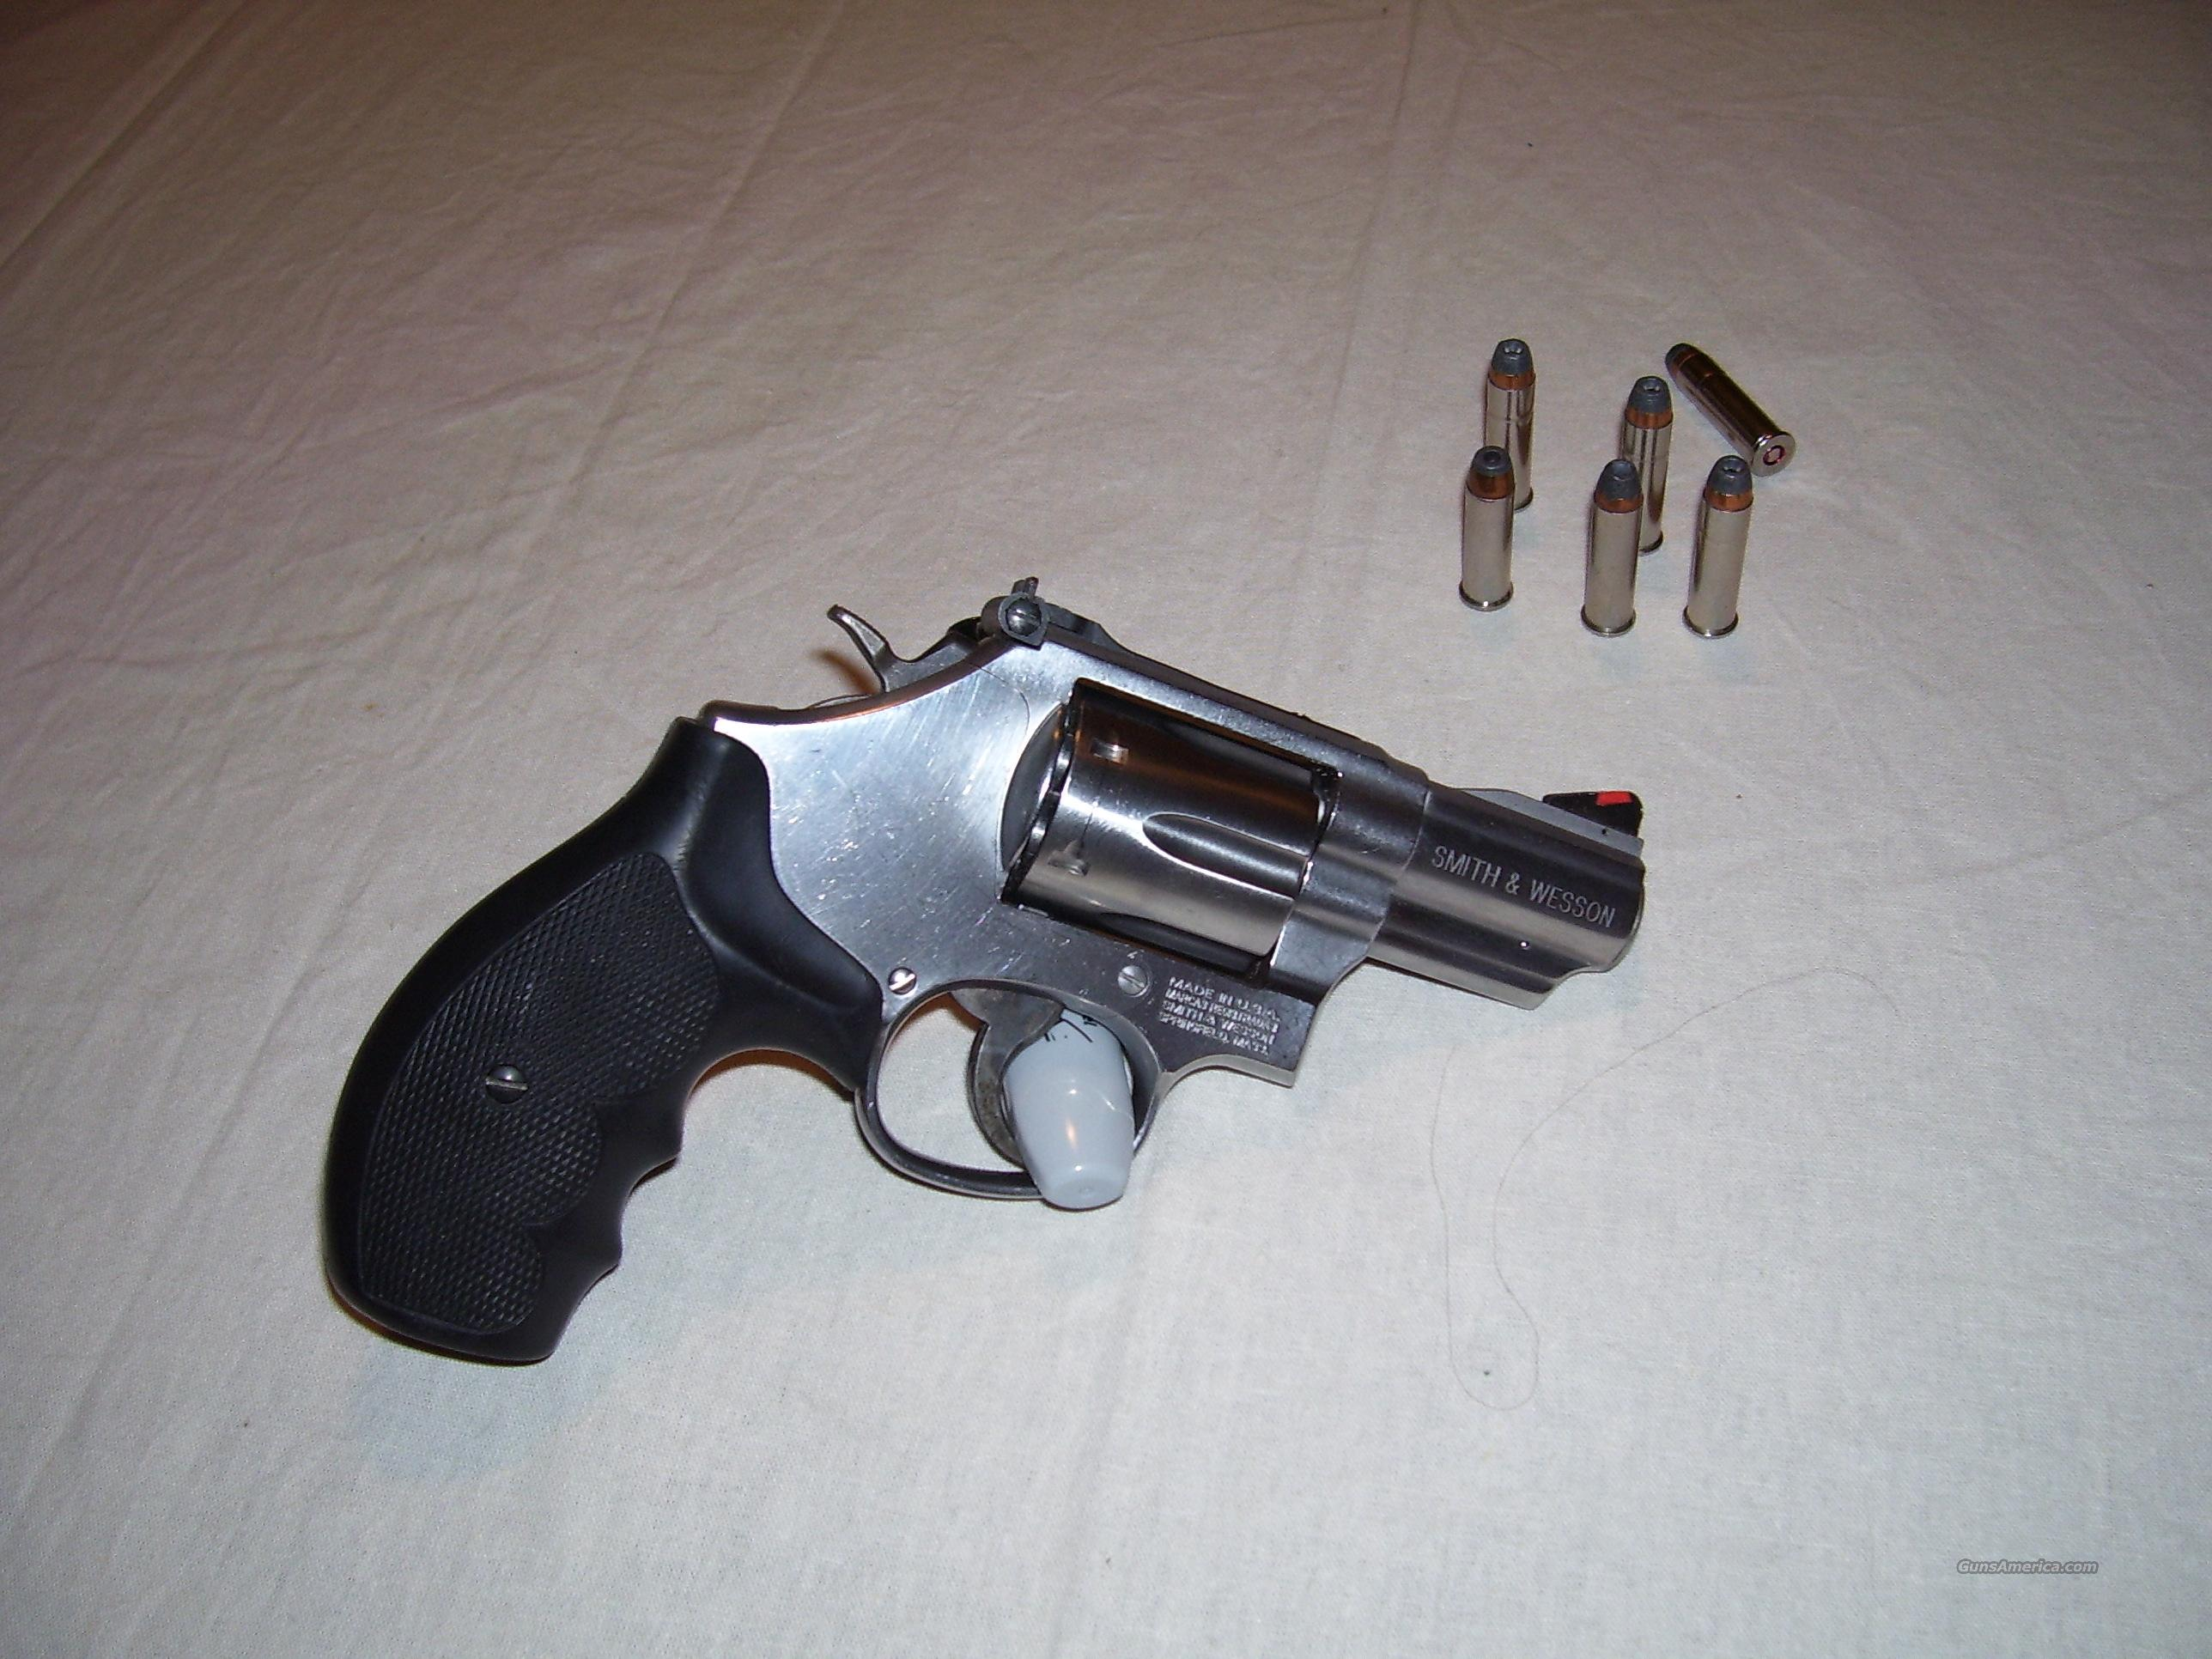 S&W MODEL 66 STAINLESS STEEL  Guns > Pistols > Smith & Wesson Revolvers > Pocket Pistols